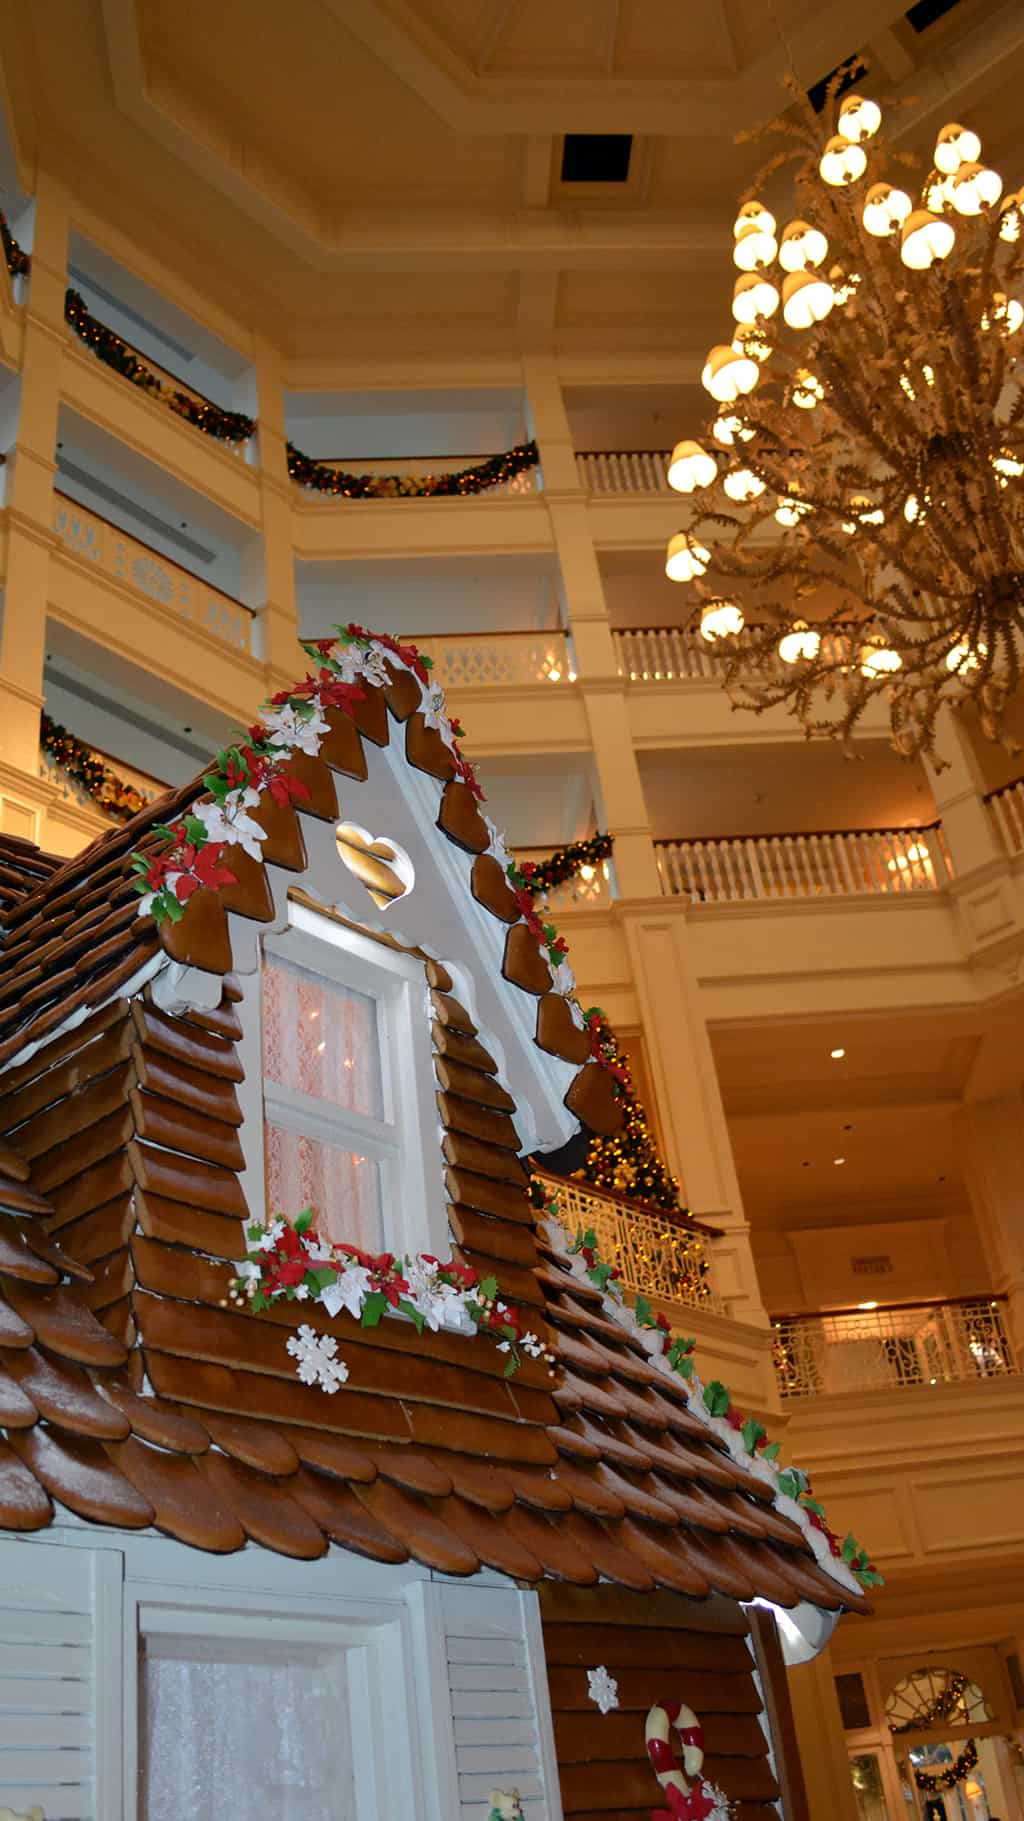 Walt Disney World Grand Floridian Christmas decor Christmas Characters Mickey and Minnie (20)